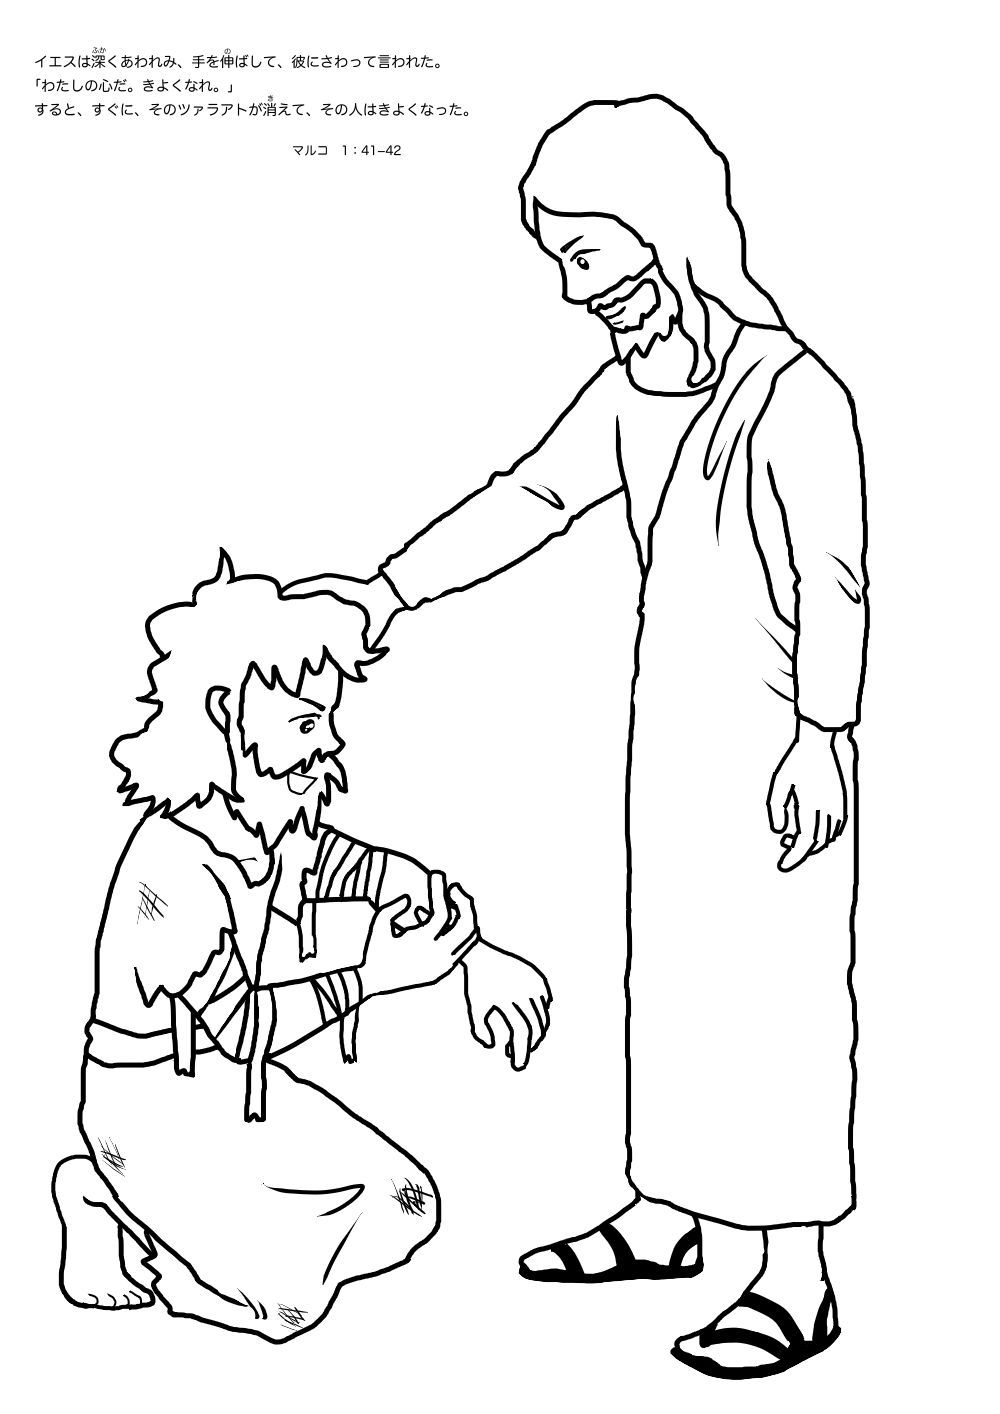 Preschool Coloring Pages The 10 Lepers Google Search Ten